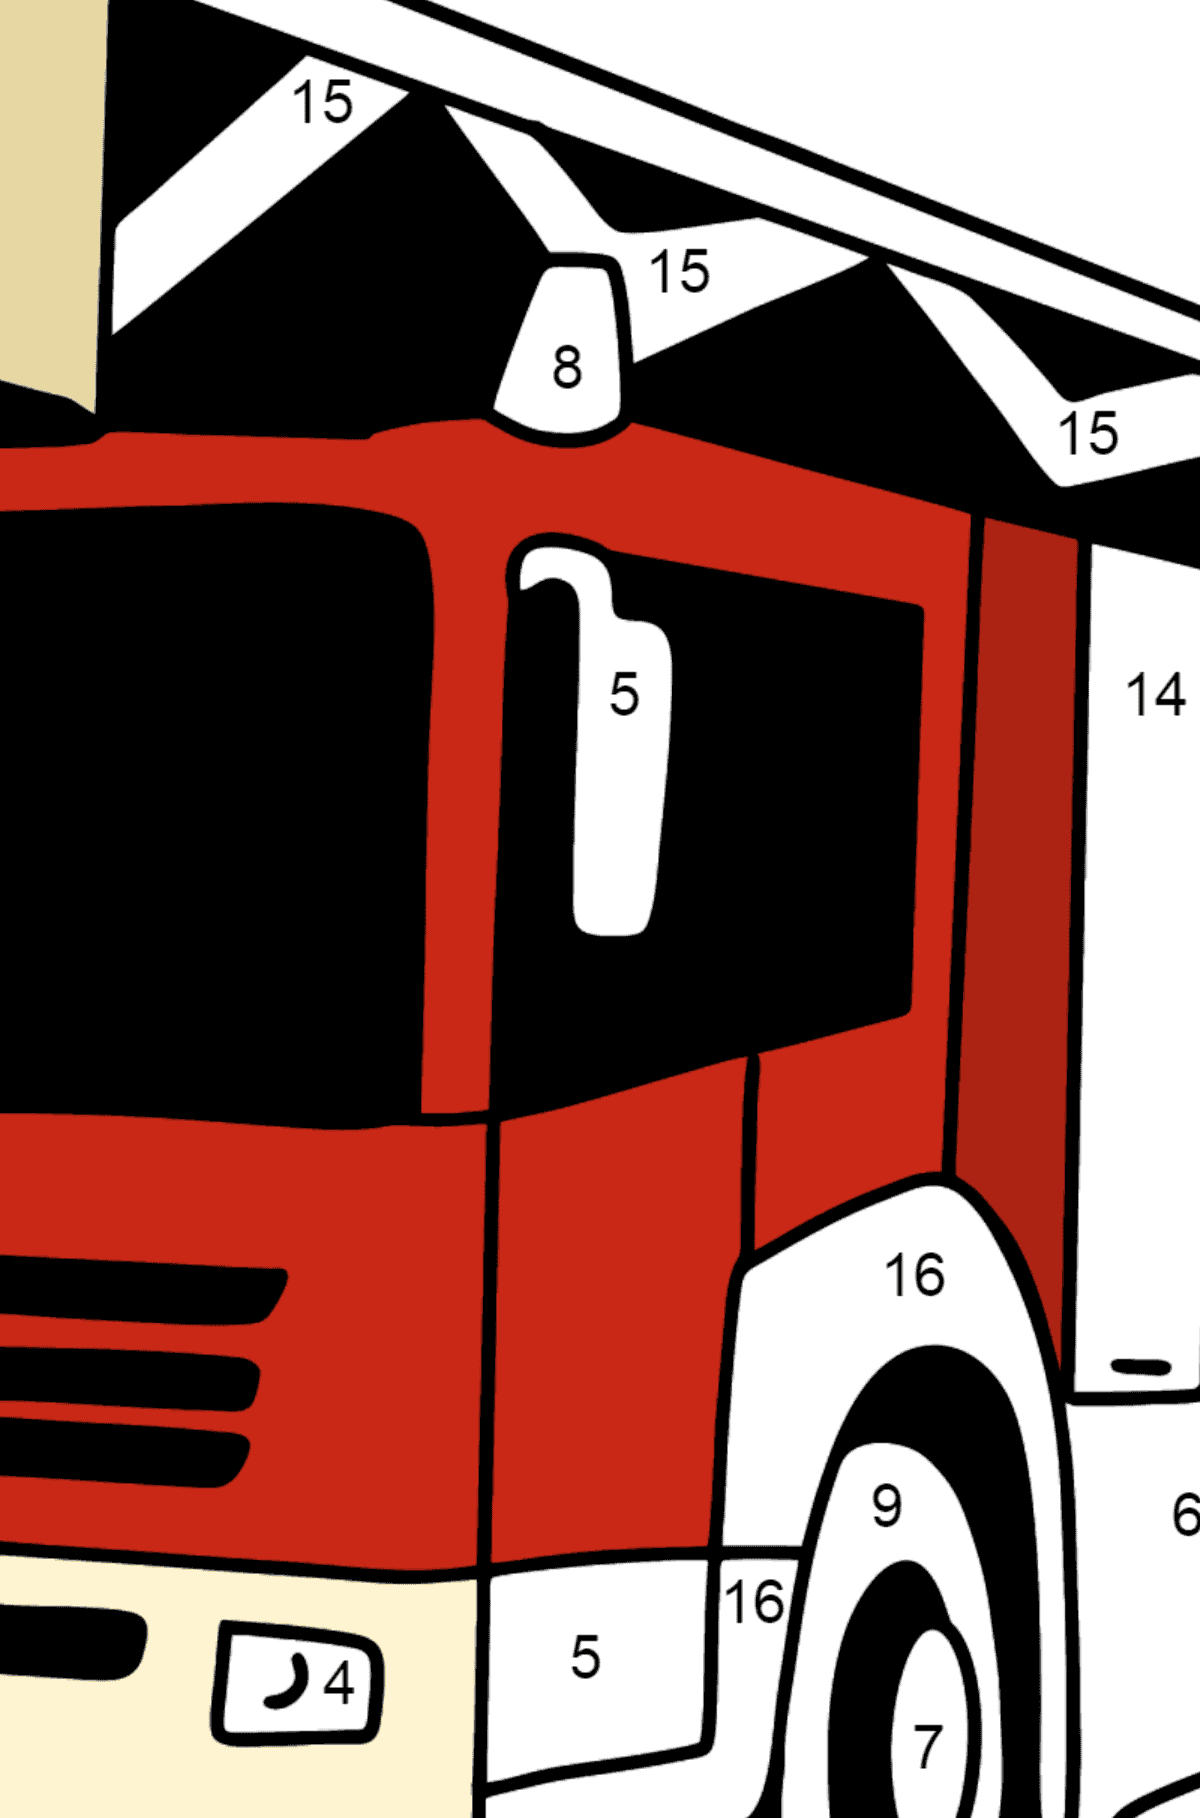 Fire Truck in Germany coloring page - Coloring by Numbers for Kids